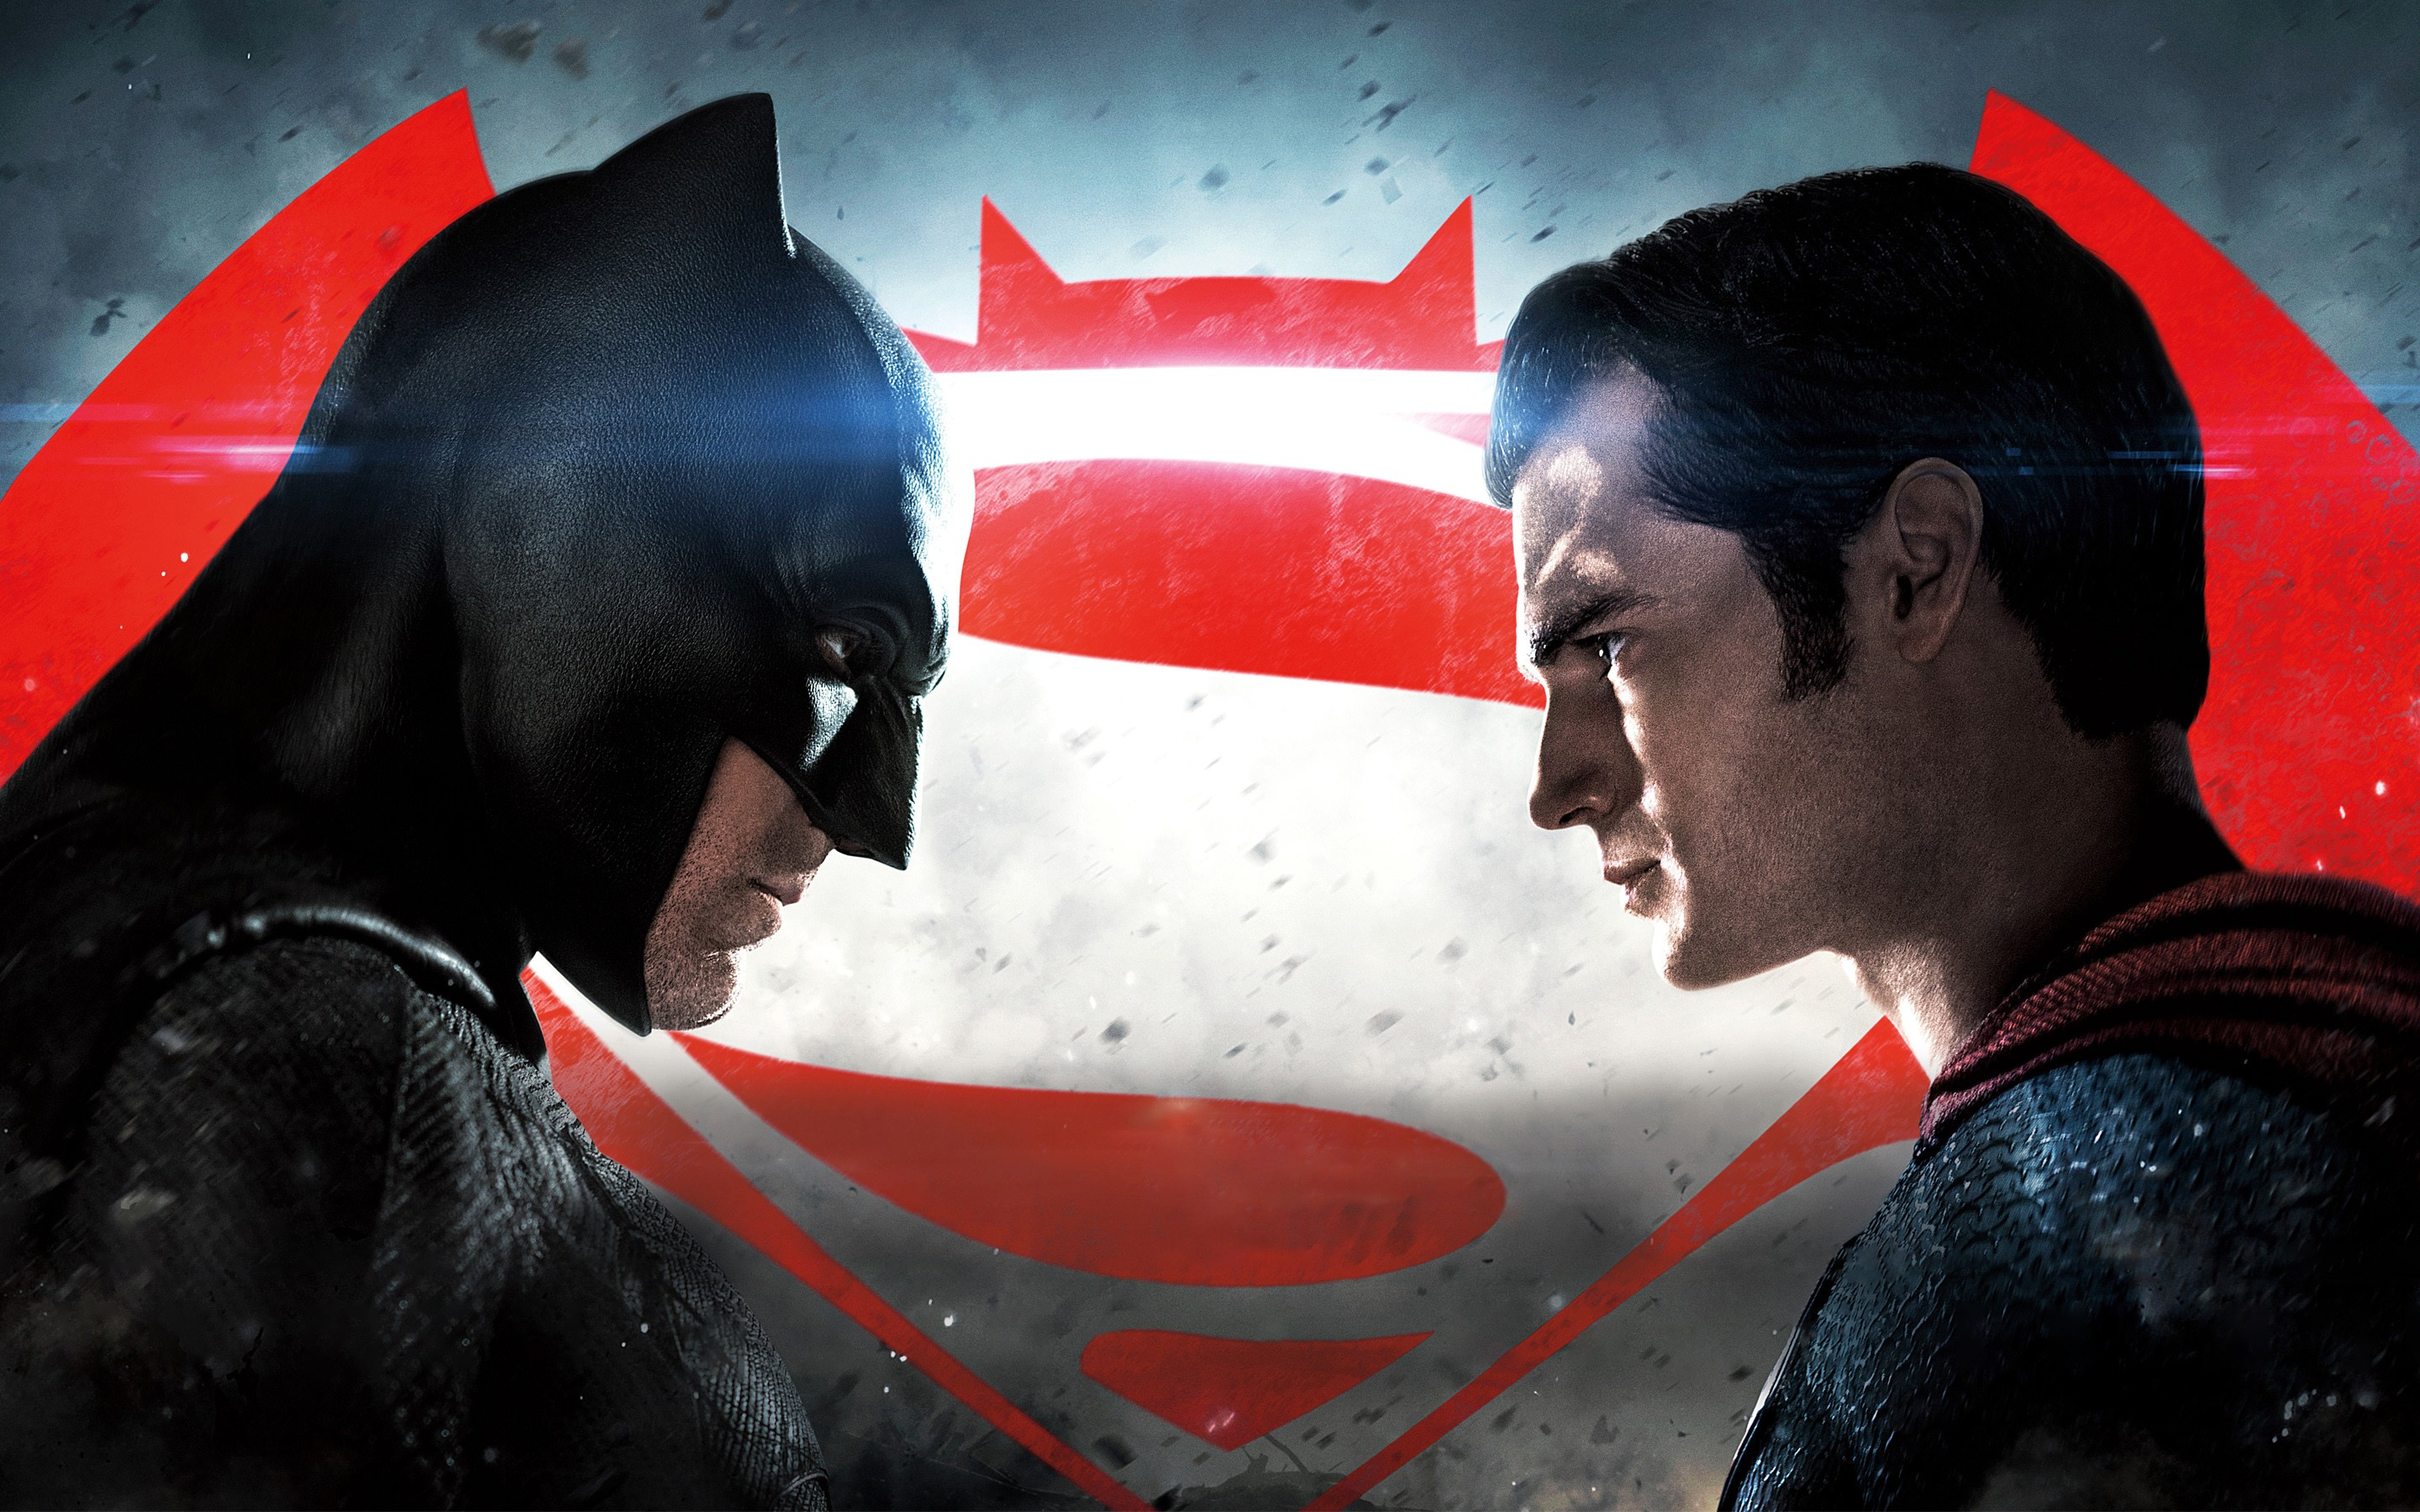 Batman Vs Superman Wallpaper 2560x1600 For Phone